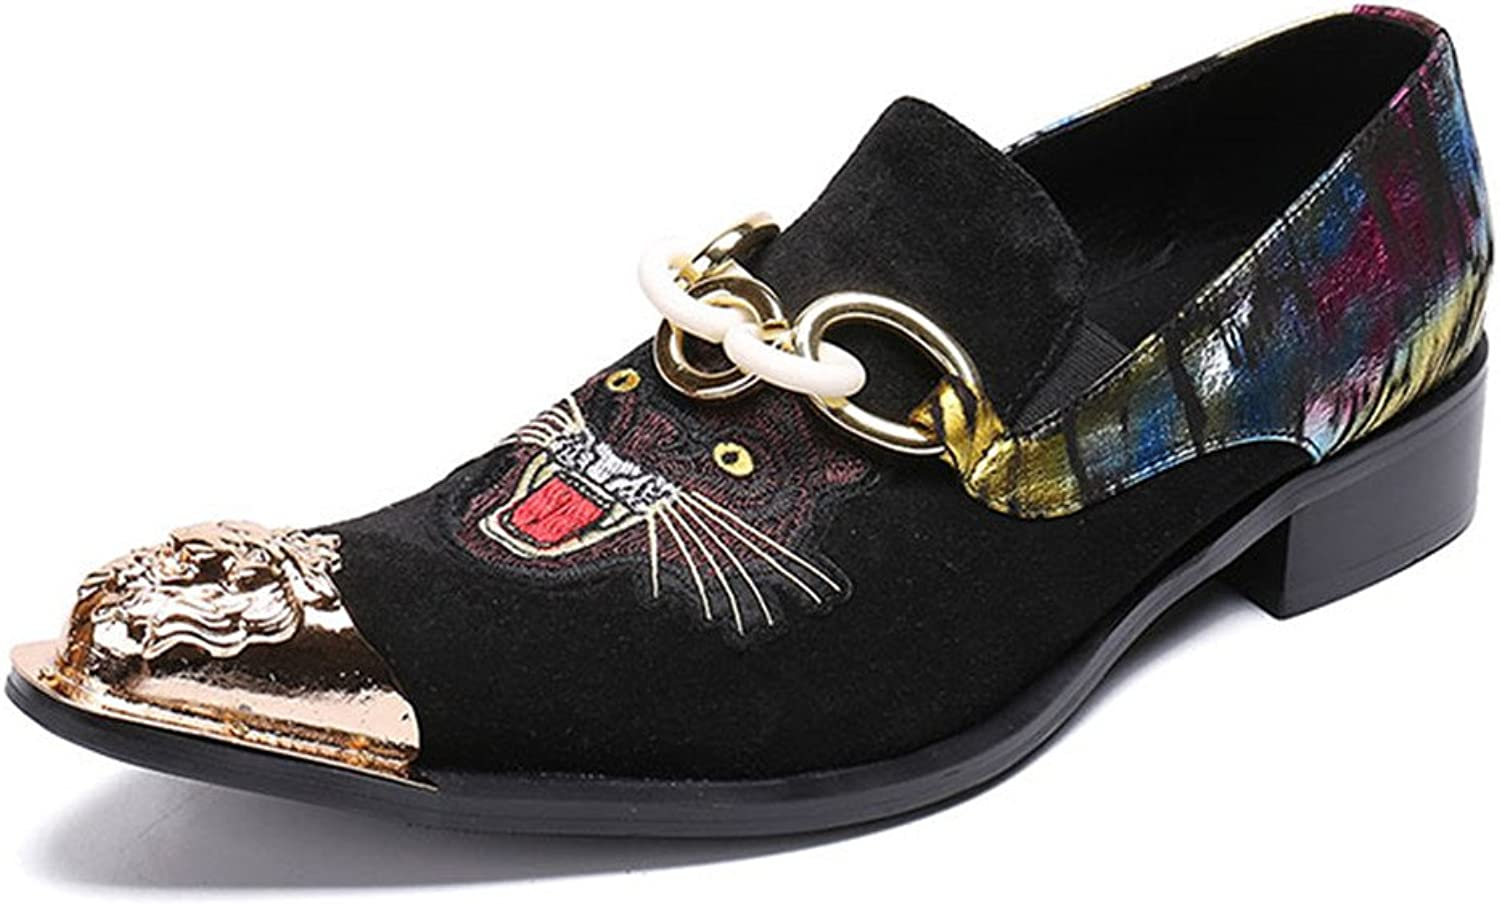 Men shoes Velvet Loafers Business Animal Embroidery Formal Dress Metal Toe Wedding Party Size 38 To 46 Chain